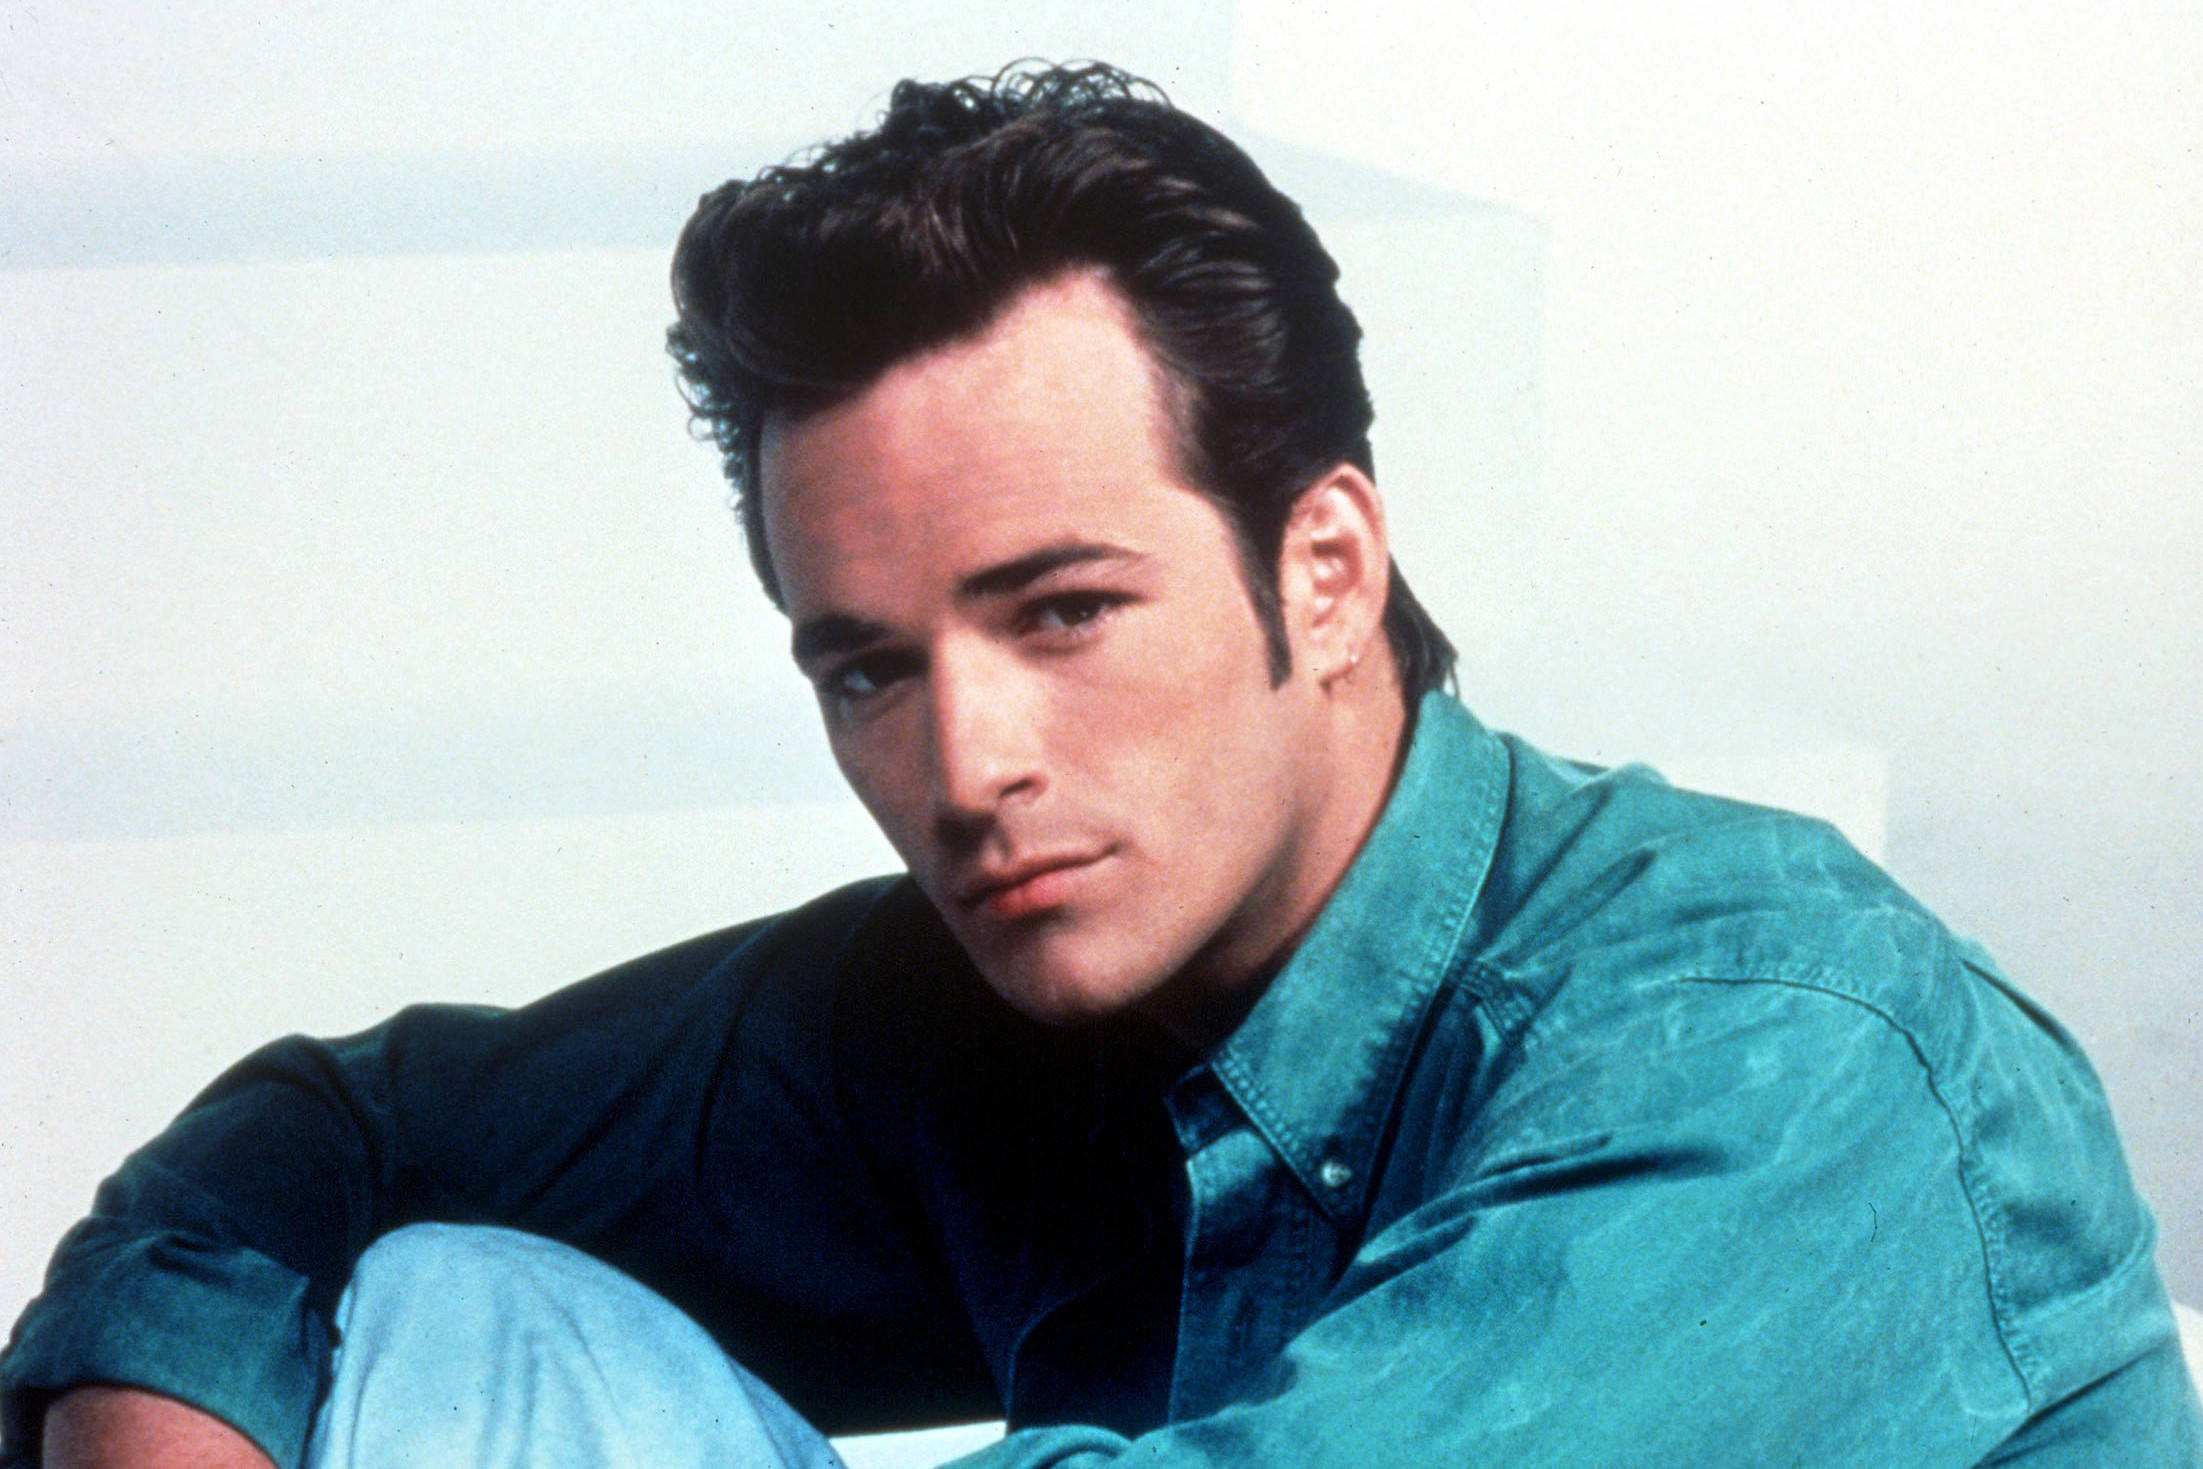 Editorial use only Mandatory Credit: Photo by Snap/REX/Shutterstock (390866dw) FILM STILLS OF 'BEVERLY HILLS, 90210 - TV' WITH 1991, LUKE PERRY IN 1991 VARIOUS